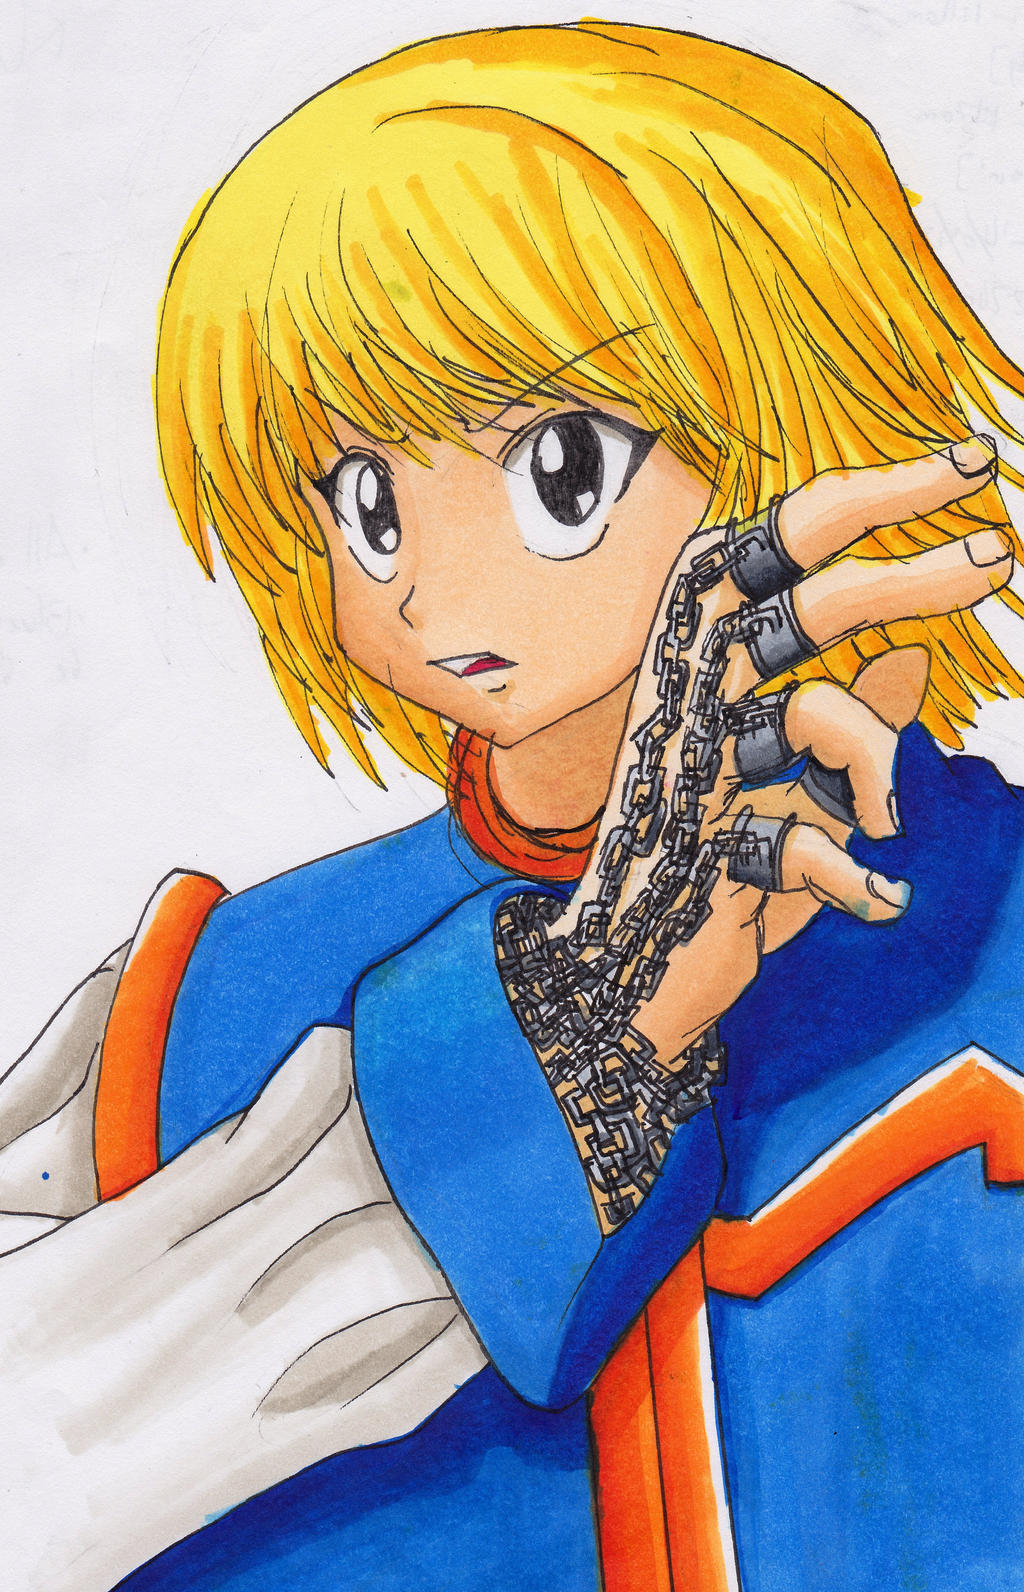 Kurapika by uniqueguy